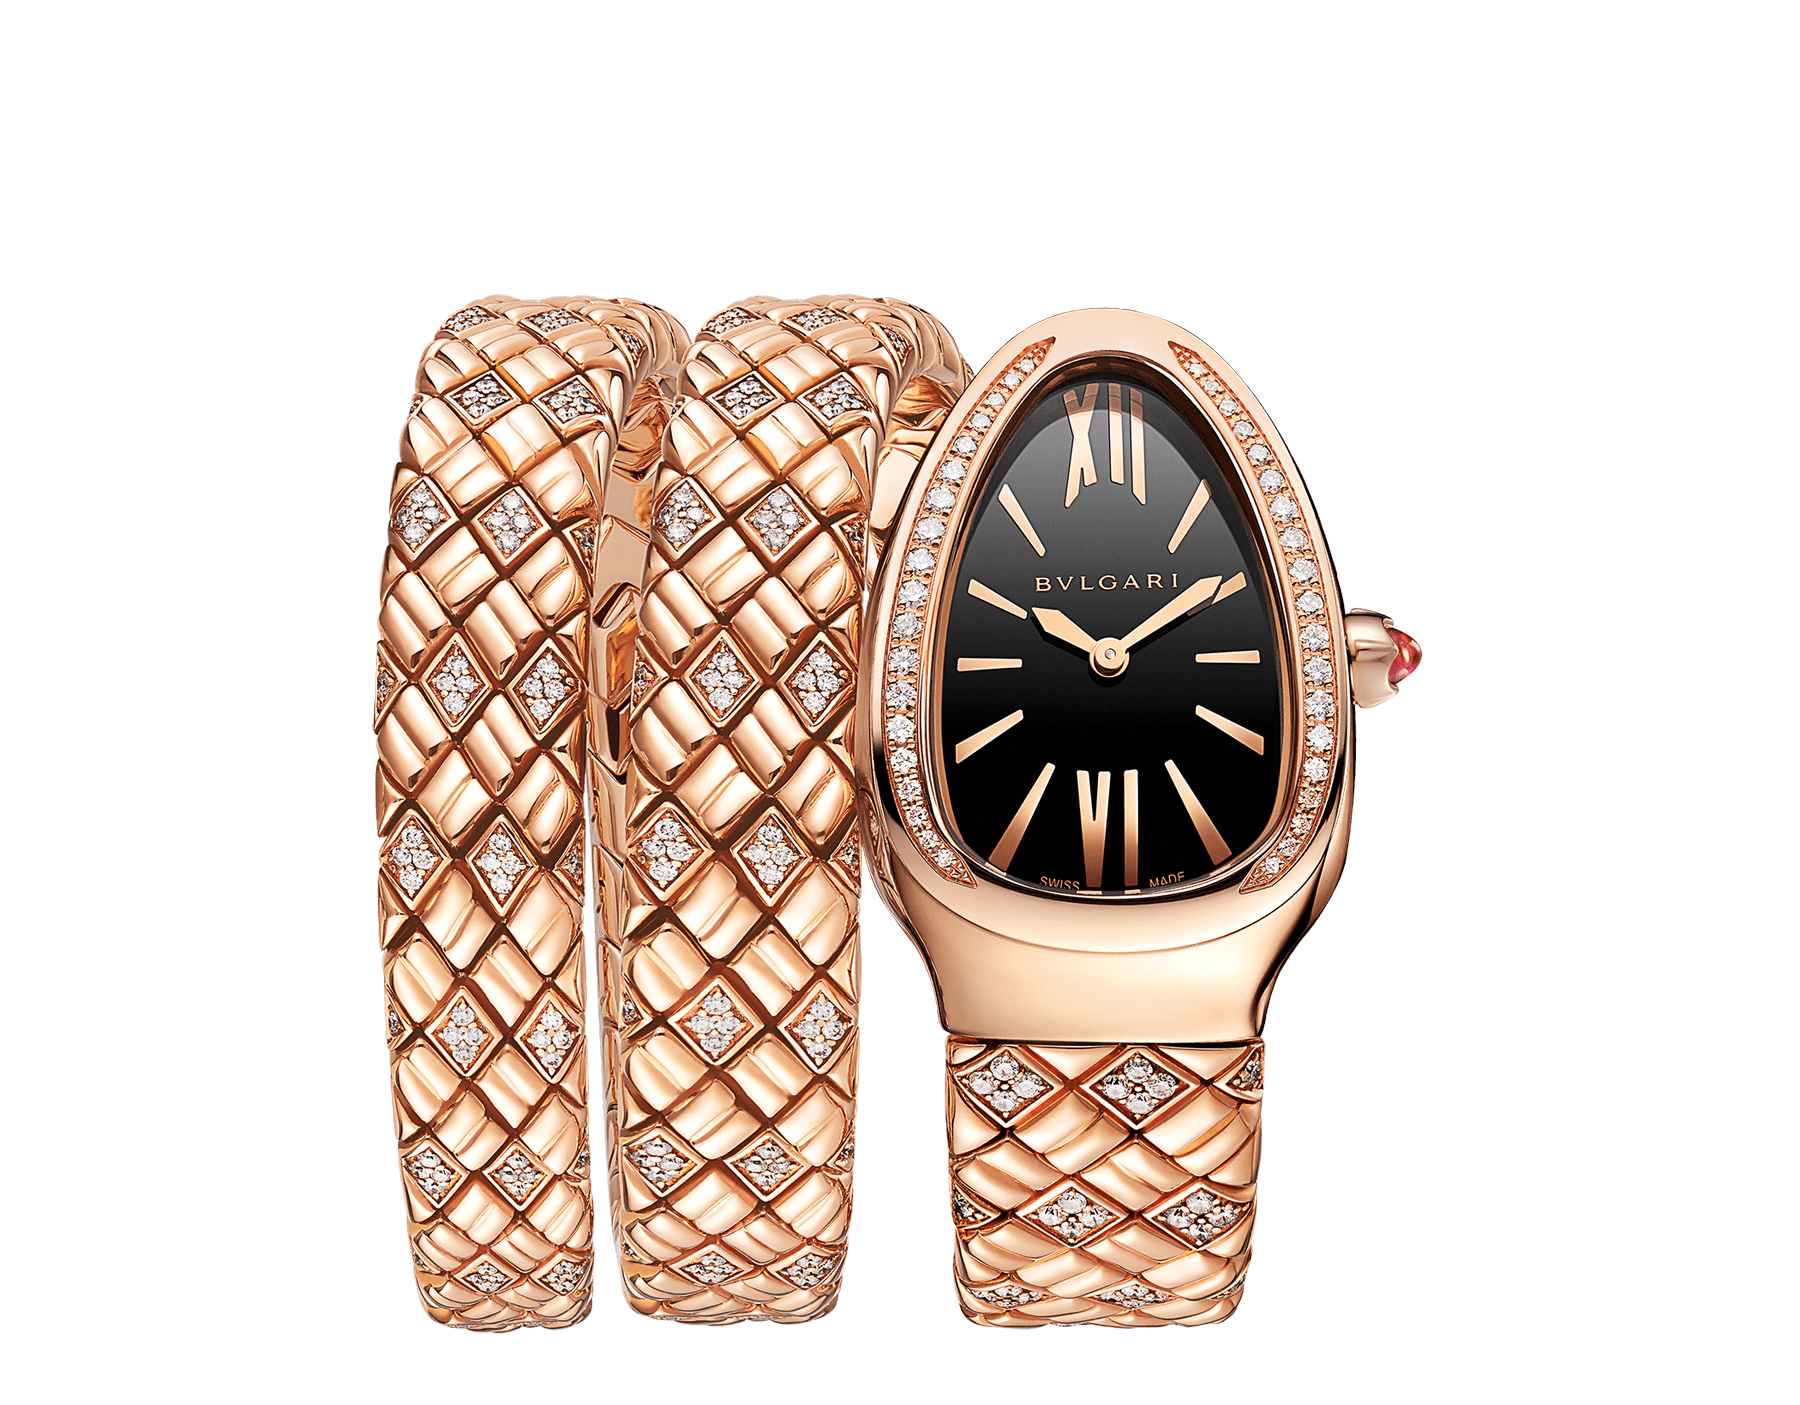 Serpenti Spiga double-spiral watch with 18 kt rose gold case and bracelet set with diamonds, and black dial 103252 image 1